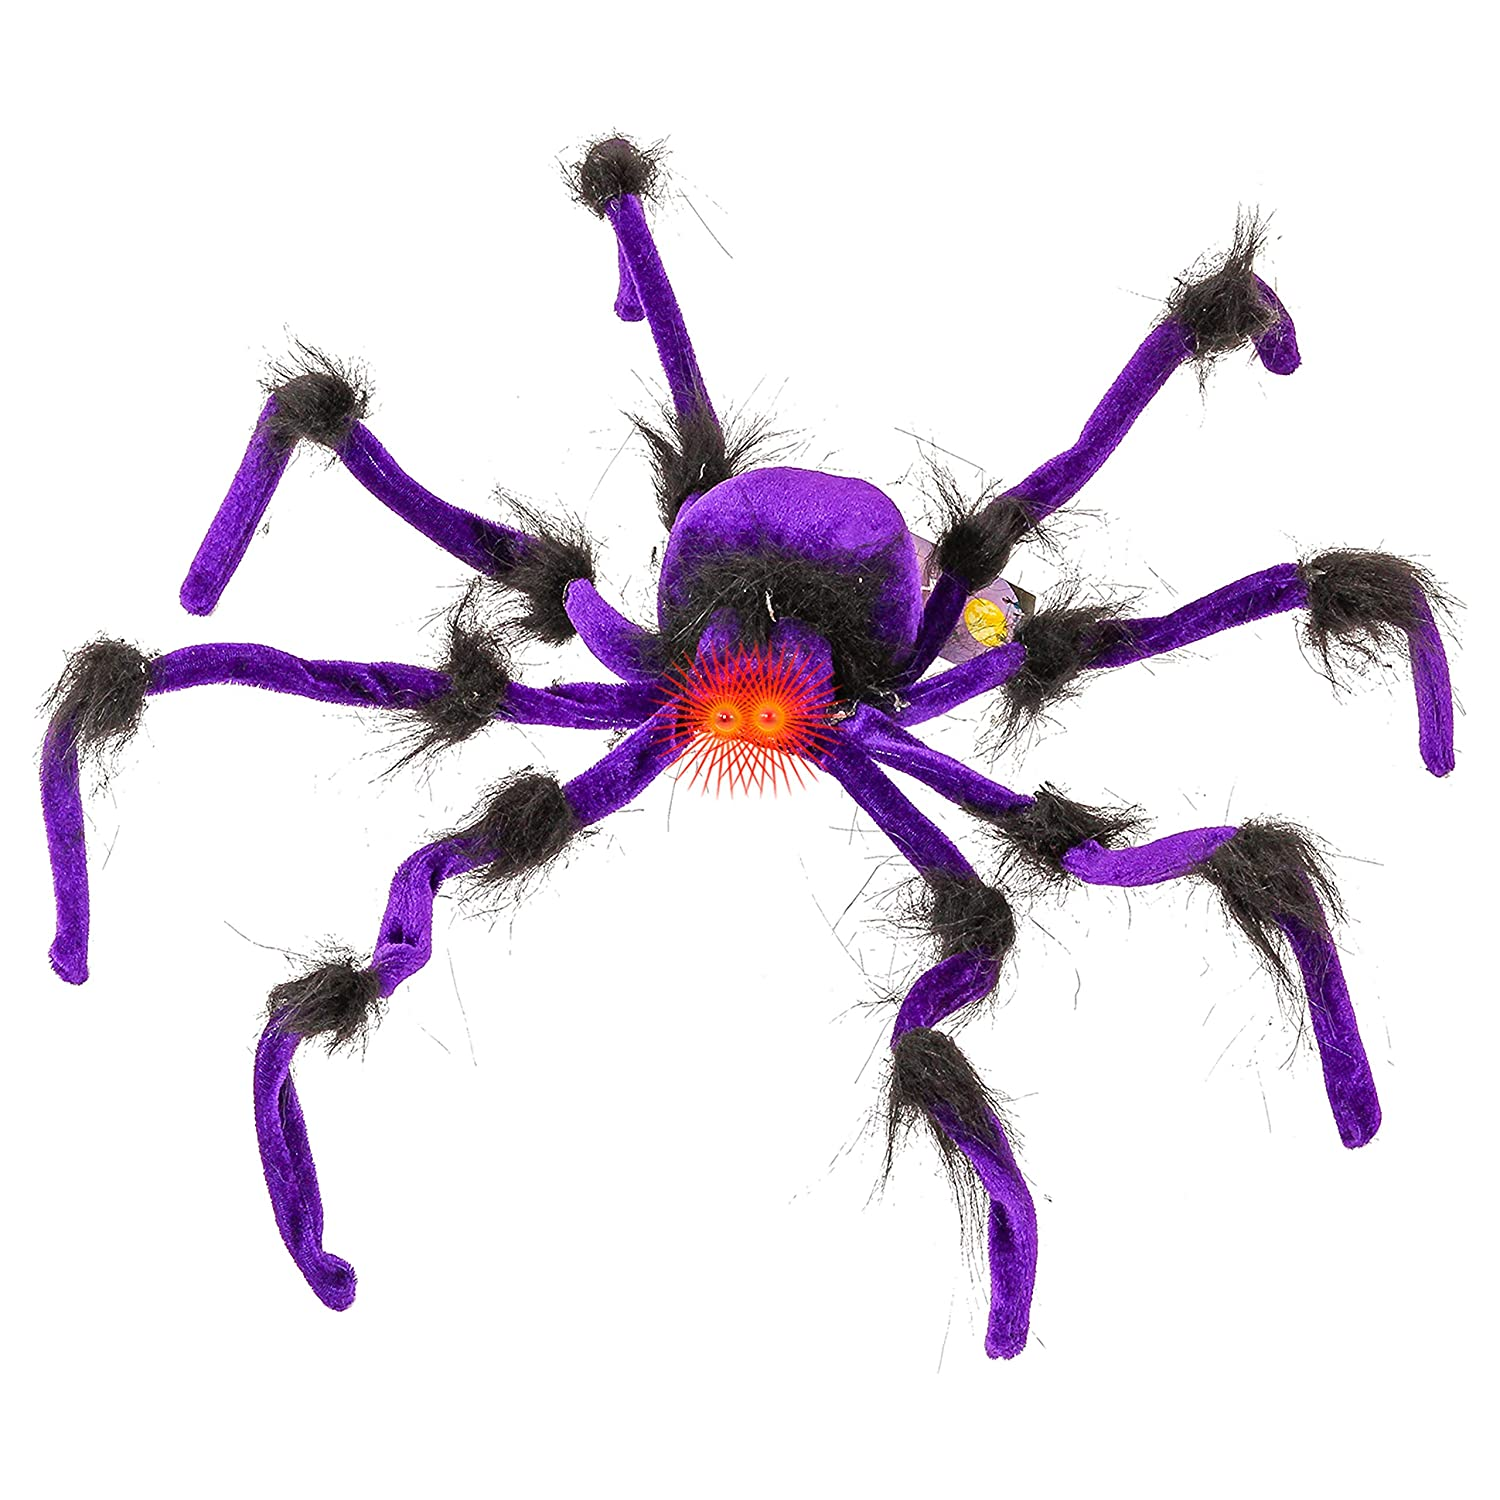 Halloween Haunters 28 Oversized Realistic Scary Black Fury Spider with Red LED Eyes and Multiple Color Flashing Body Prop Decoration Place In Web Tree Entryway Yard Lawn Haunted House Graveyard